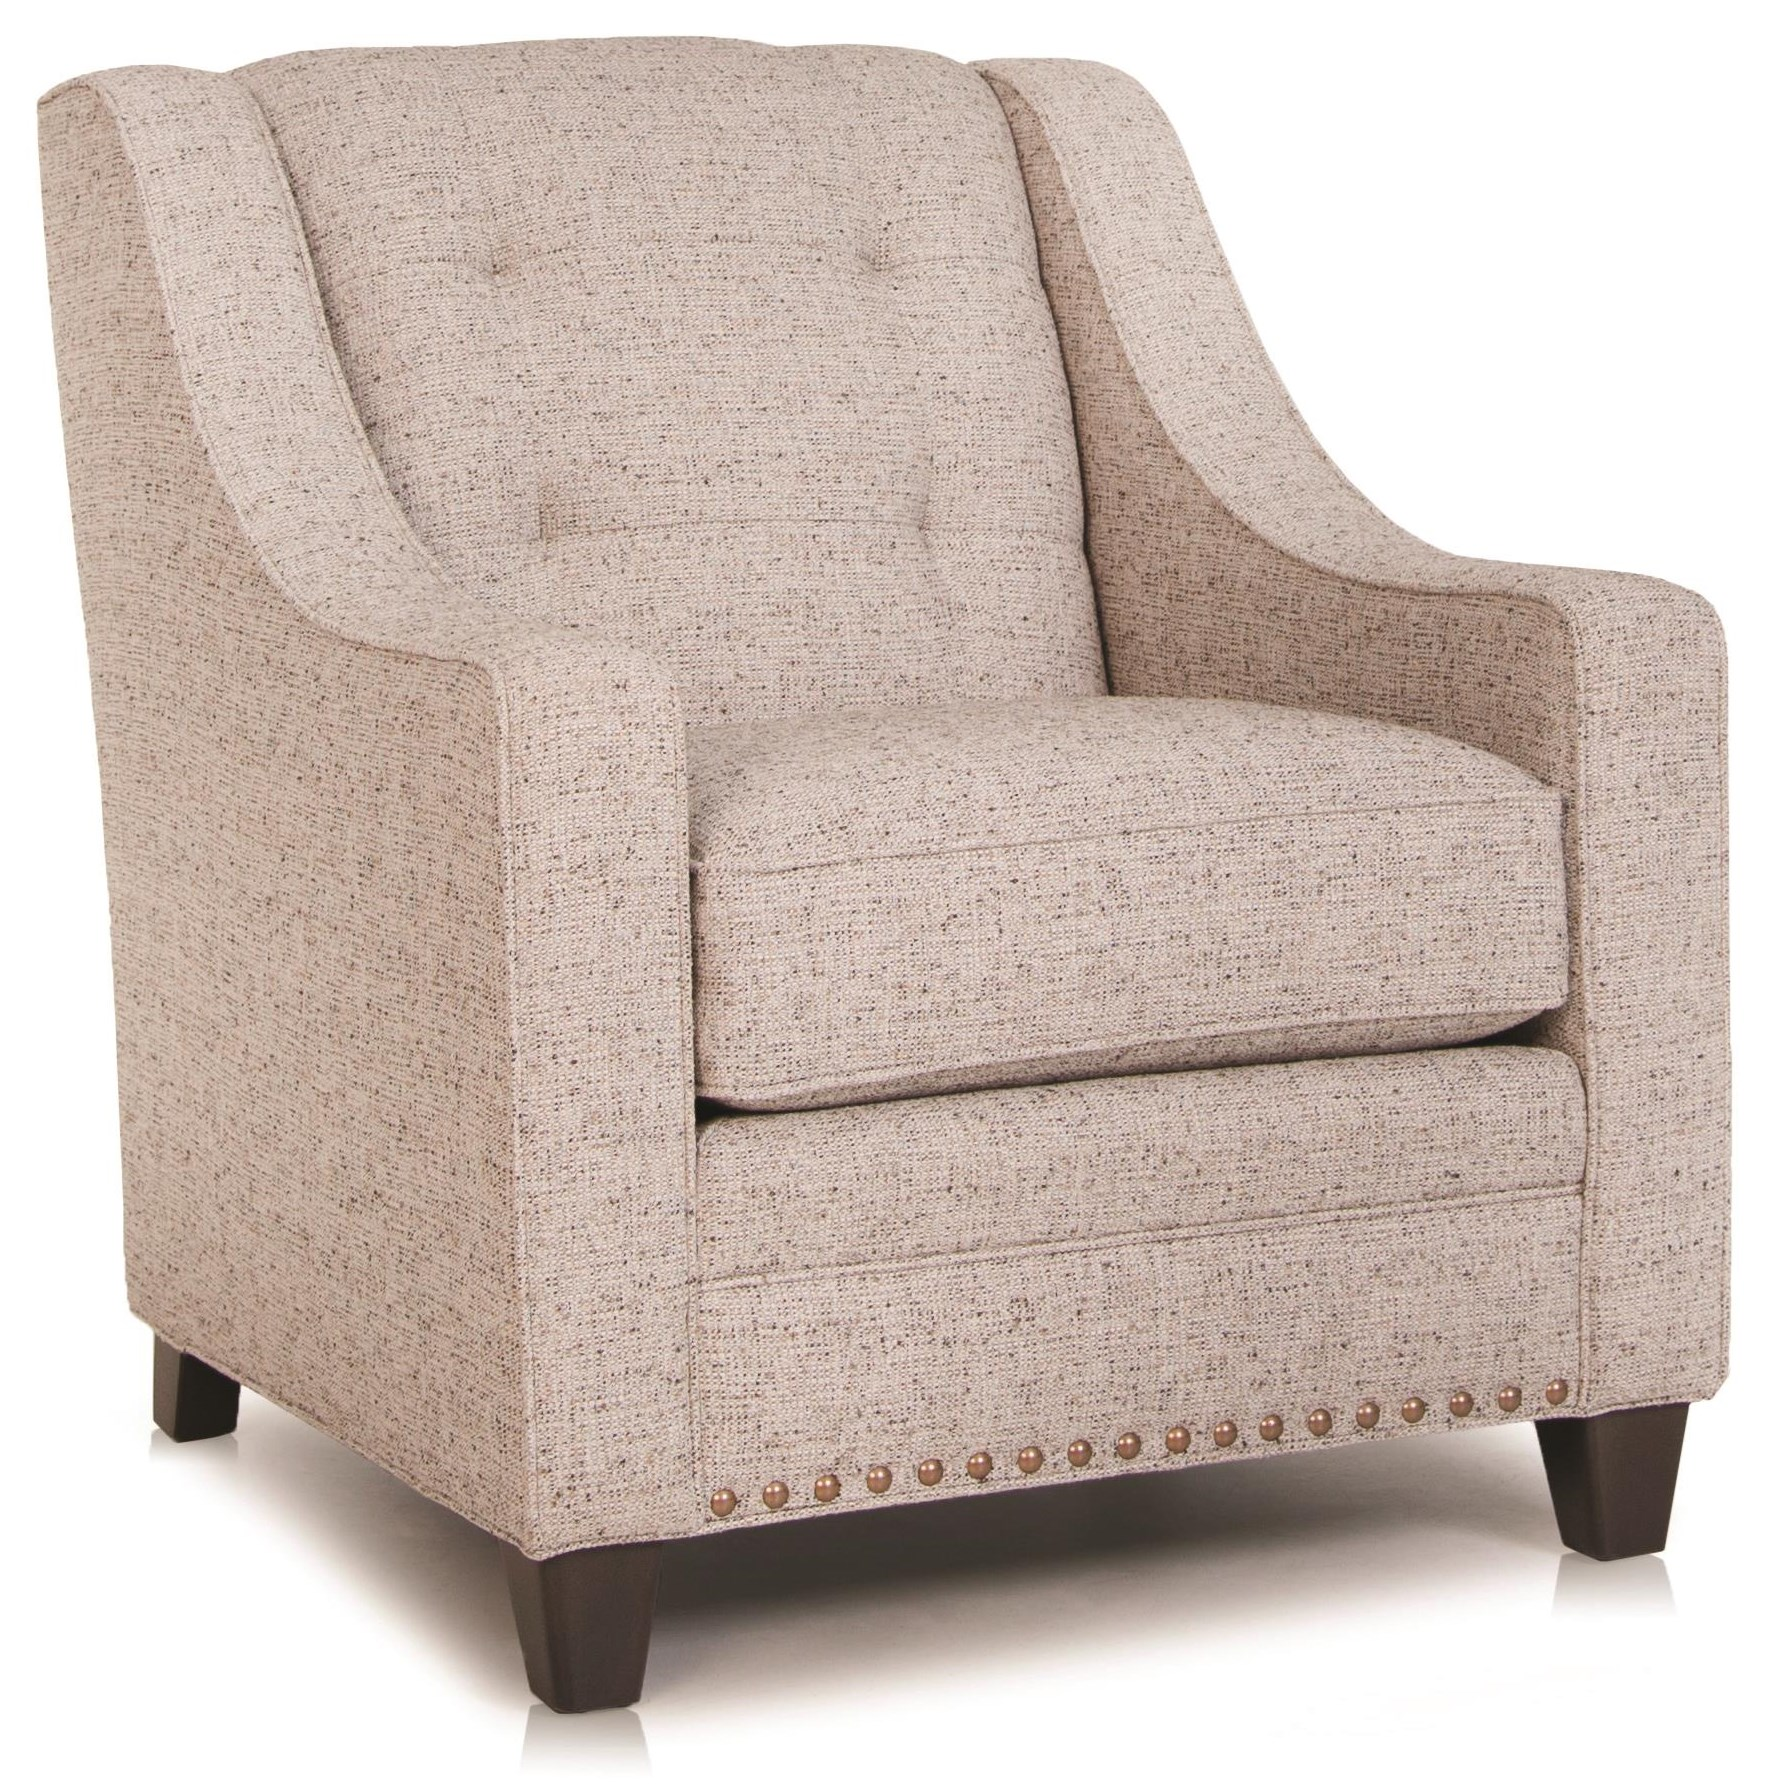 Amanda Chair by Smith Brothers at Crowley Furniture & Mattress